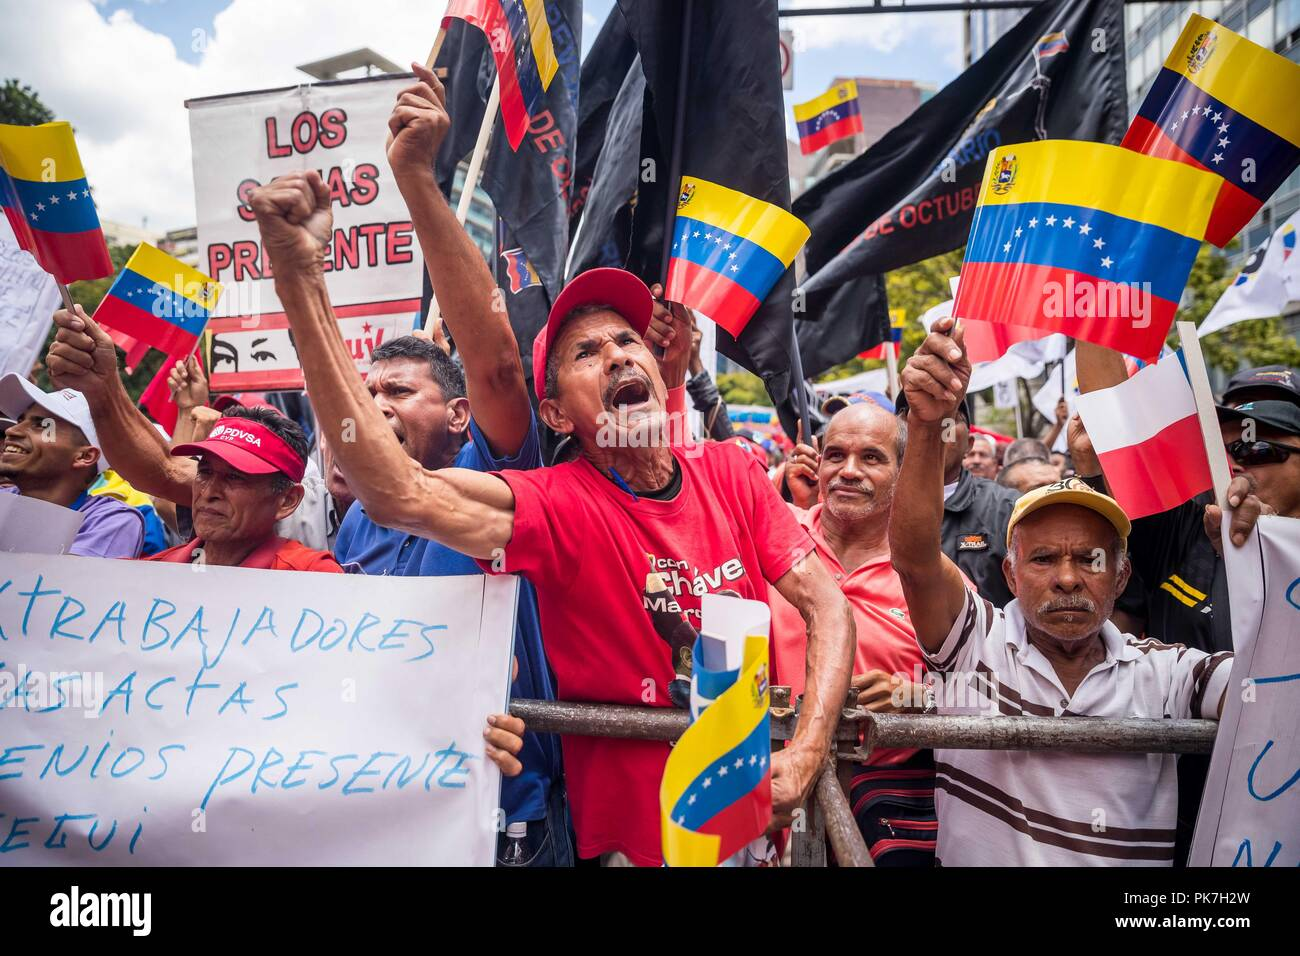 Caracas, Venezuela. 11th Sep, 2018. Supporters of Nicolas Maduro's Government demonstrate against the US 'imperialism' in Caracas, Venezuela, 11 September 2018. Thousands of sympathizers marched in support of the Venezuelan President, who advances an economic package rejected by experts and the opposition, as well as 'against US imperialism', which they accused of threatening the stability of the oil country. Credit: Miguel Gutierrez/EFE/Alamy Live News - Stock Image